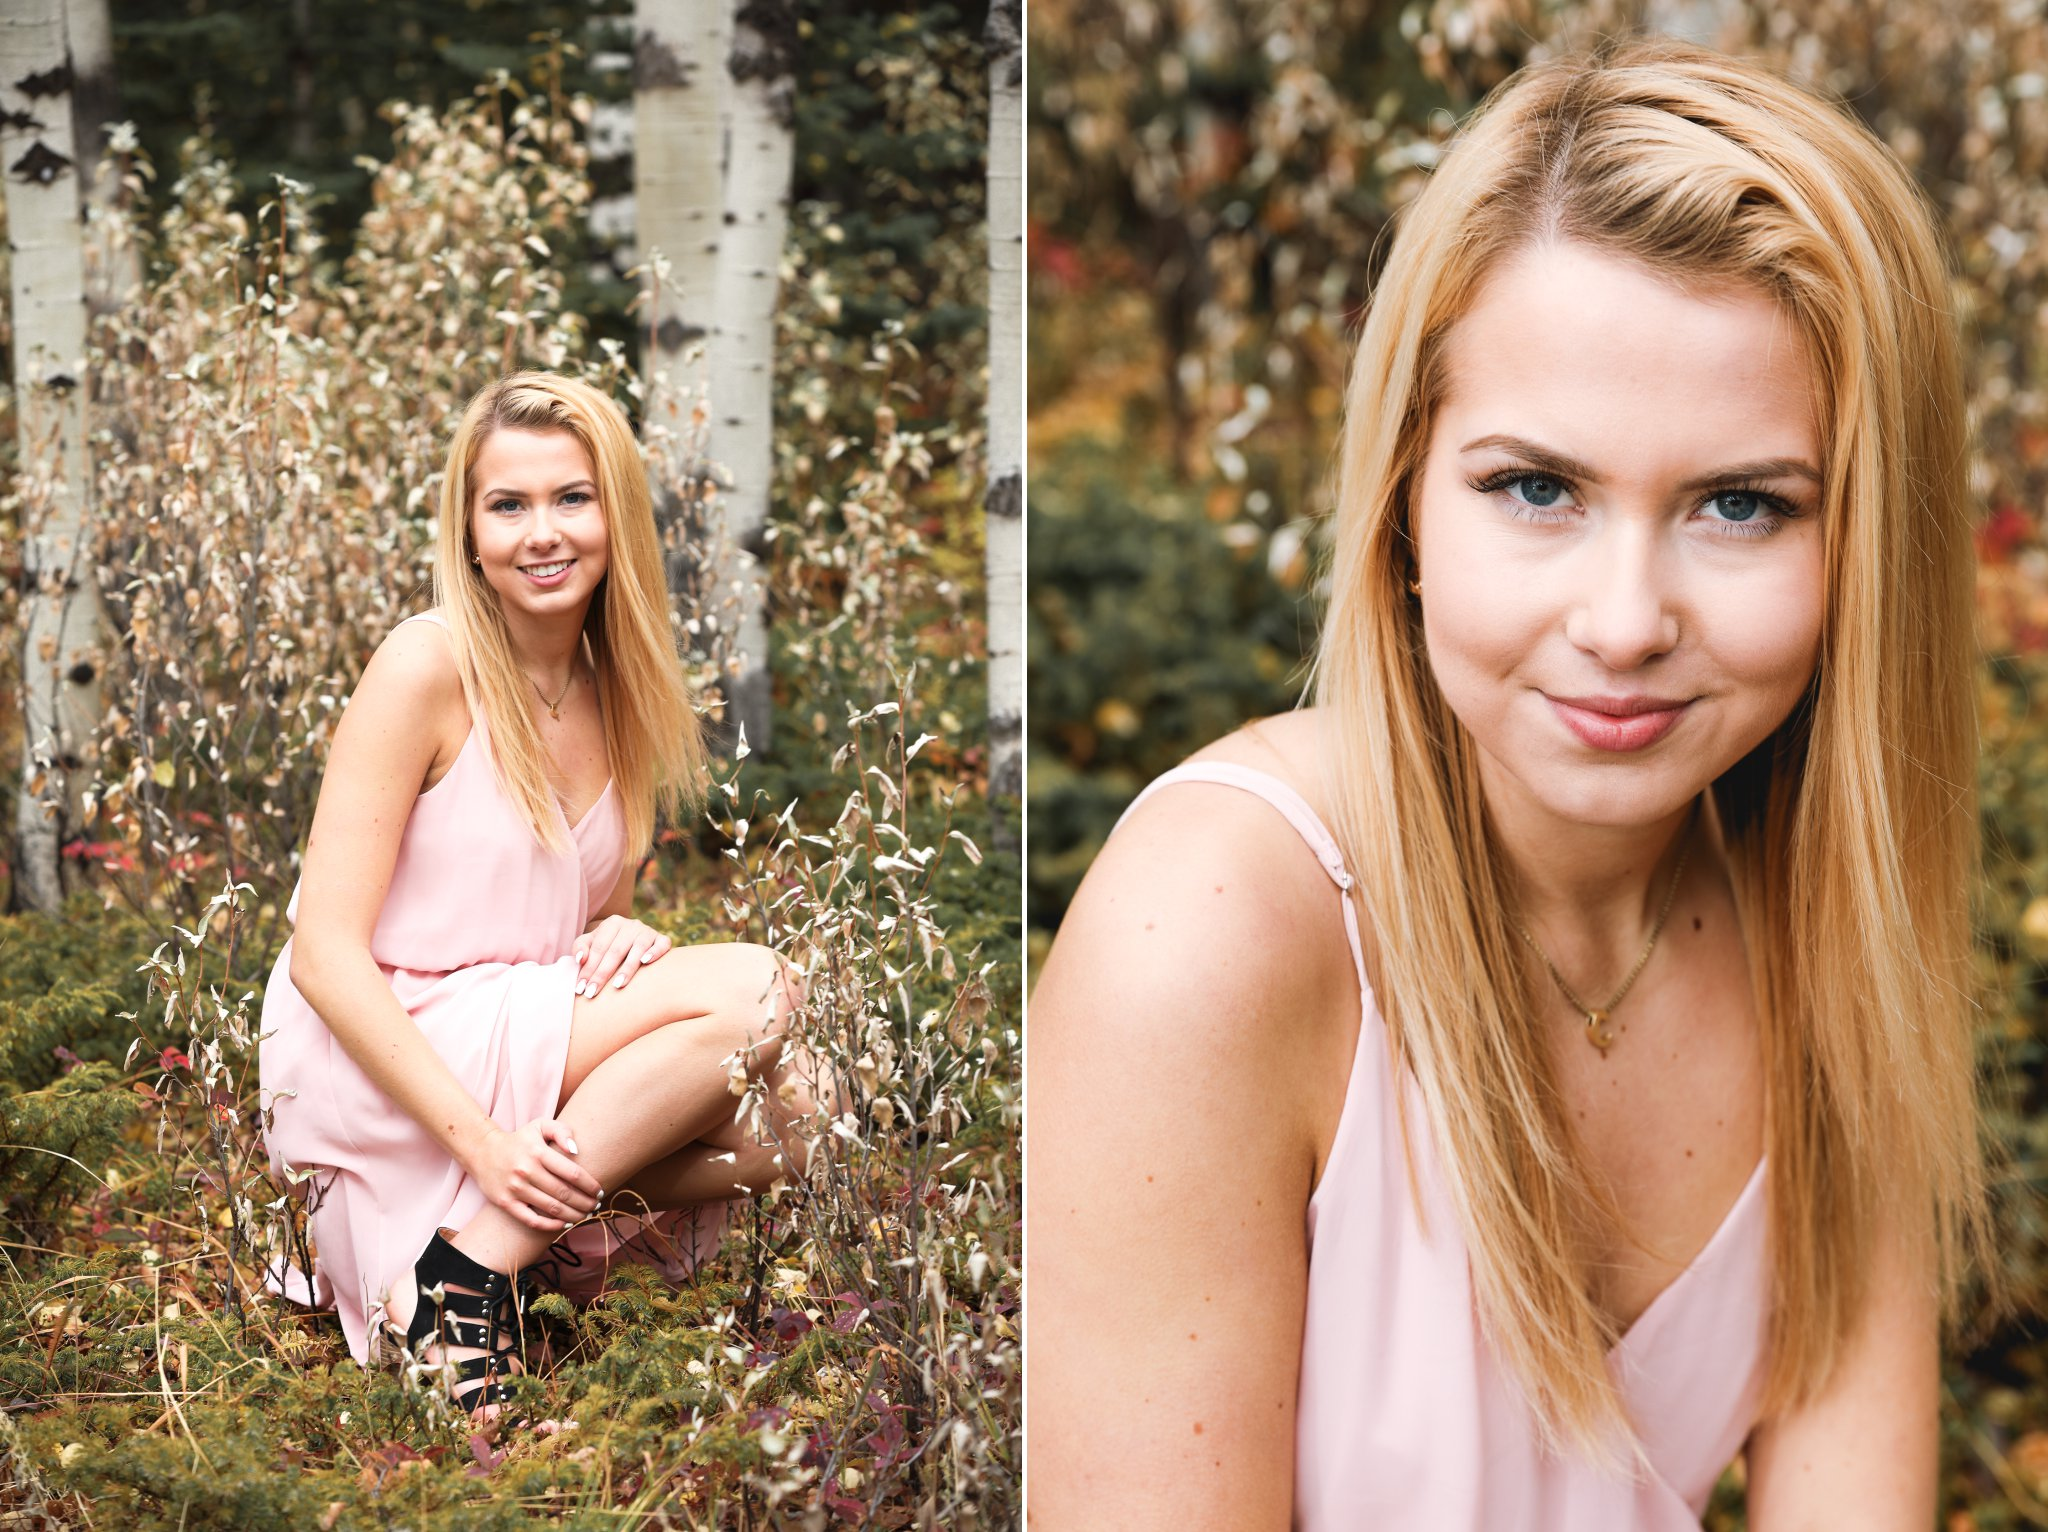 AshleyDaphnePhotography Calgary Photographer Wedding Family Senior Portraits Rocky Mountains Sheep River Falls Autumn Fall_0013.jpg